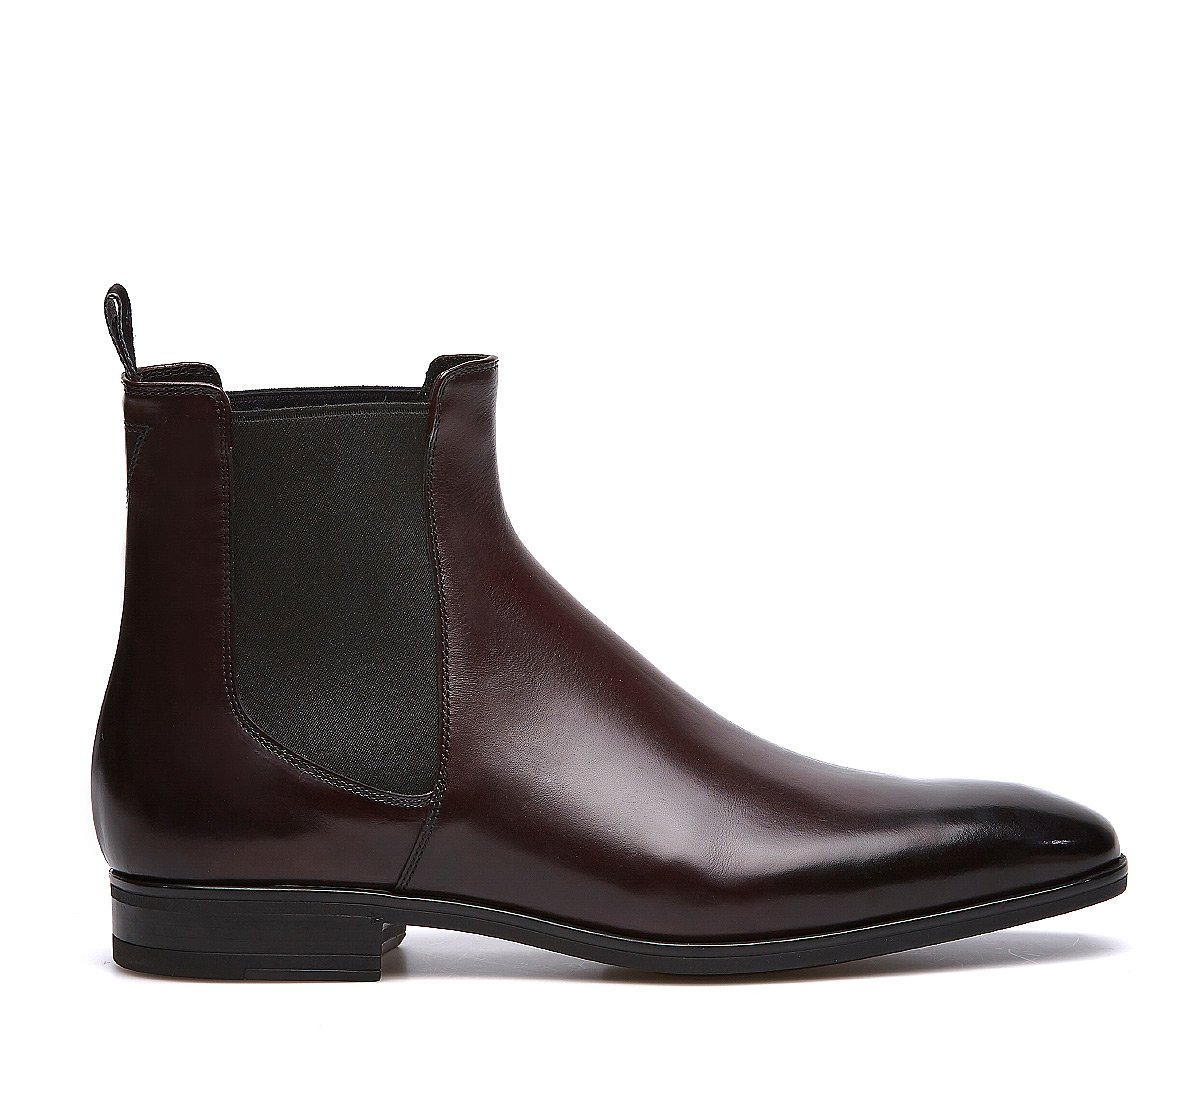 Beatle boot in luxury calf leather with wool lining